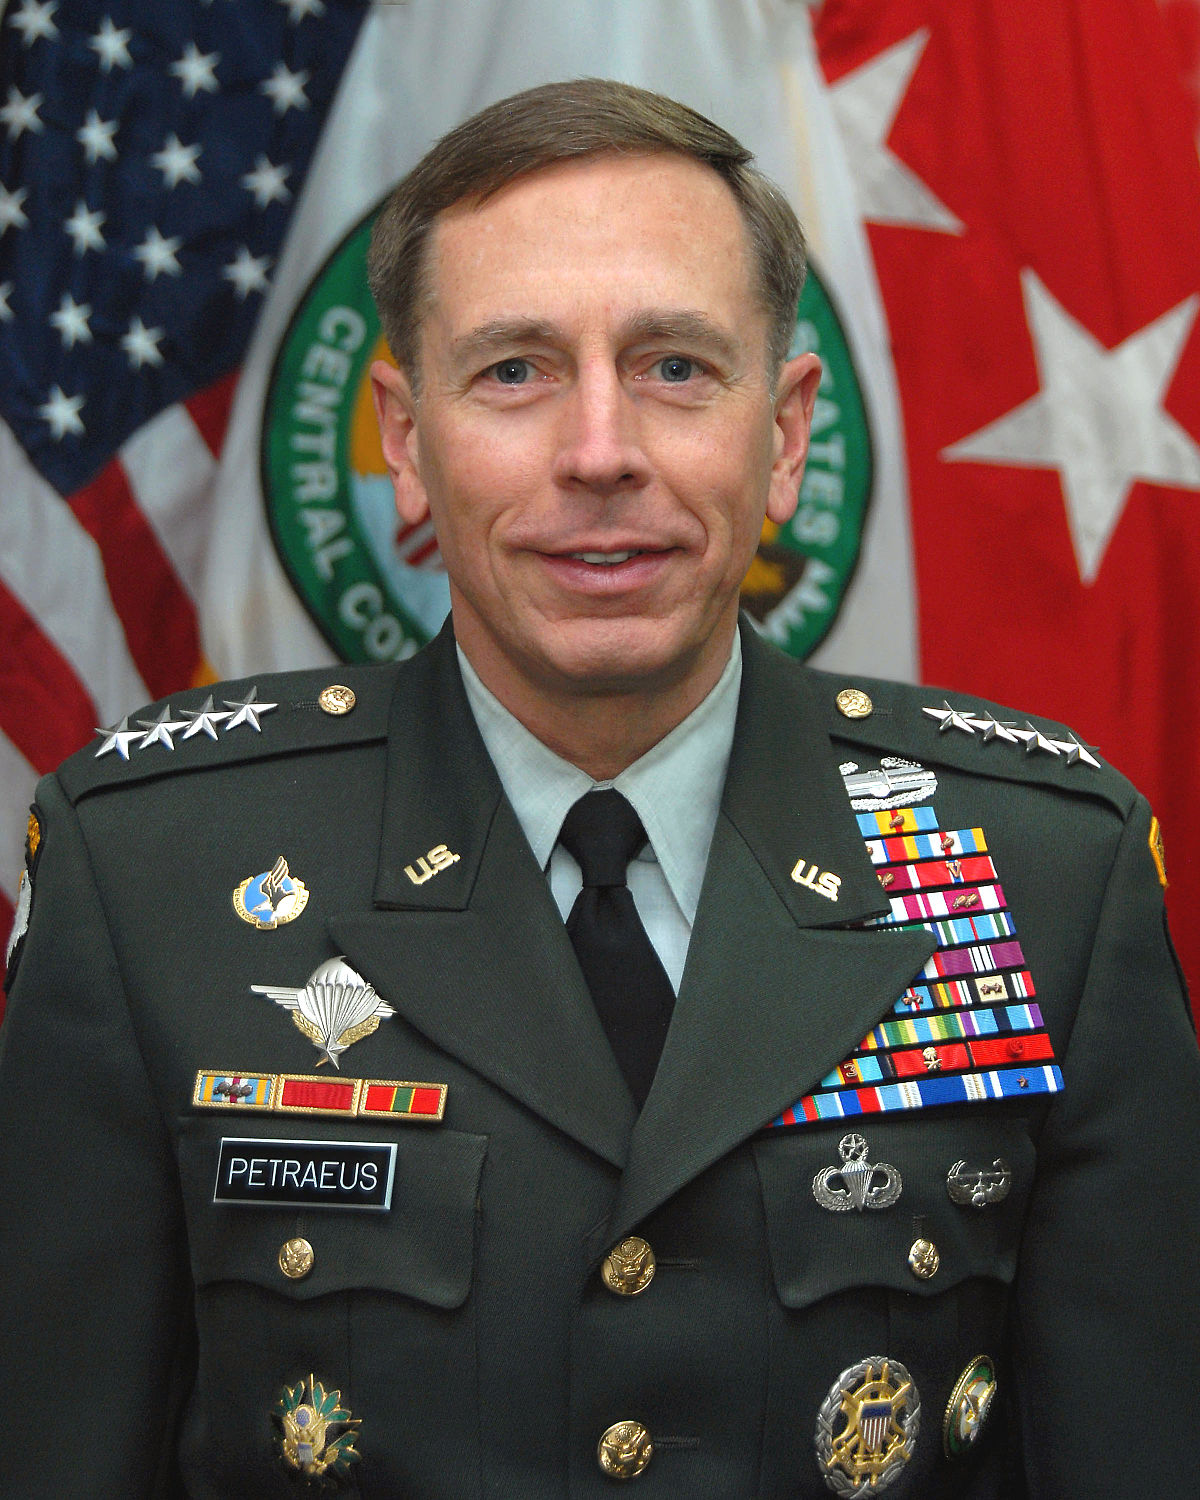 david petraeus wikipedia. Black Bedroom Furniture Sets. Home Design Ideas